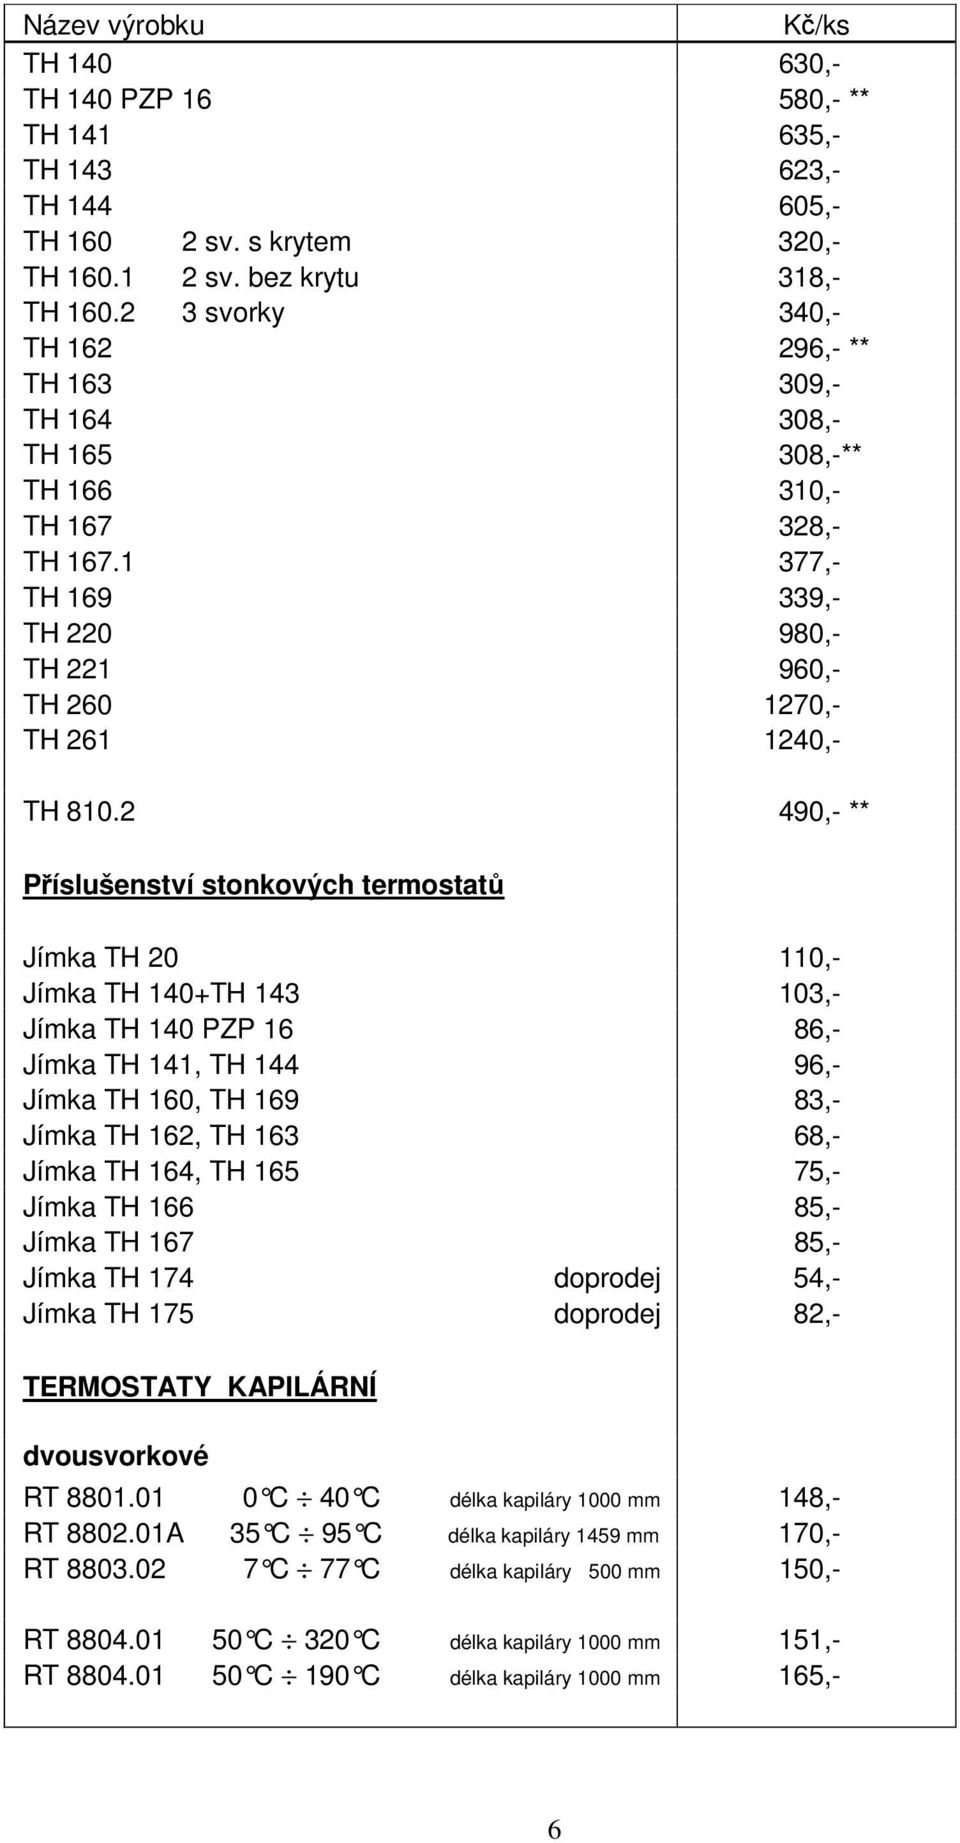 2 490,- ** Příslušenství stonkových termostatů Jímka TH 20 110,- Jímka TH 140+TH 143 103,- Jímka TH 140 PZP 16 86,- Jímka TH 141, TH 144 96,- Jímka TH 160, TH 169 83,- Jímka TH 162, TH 163 68,- Jímka